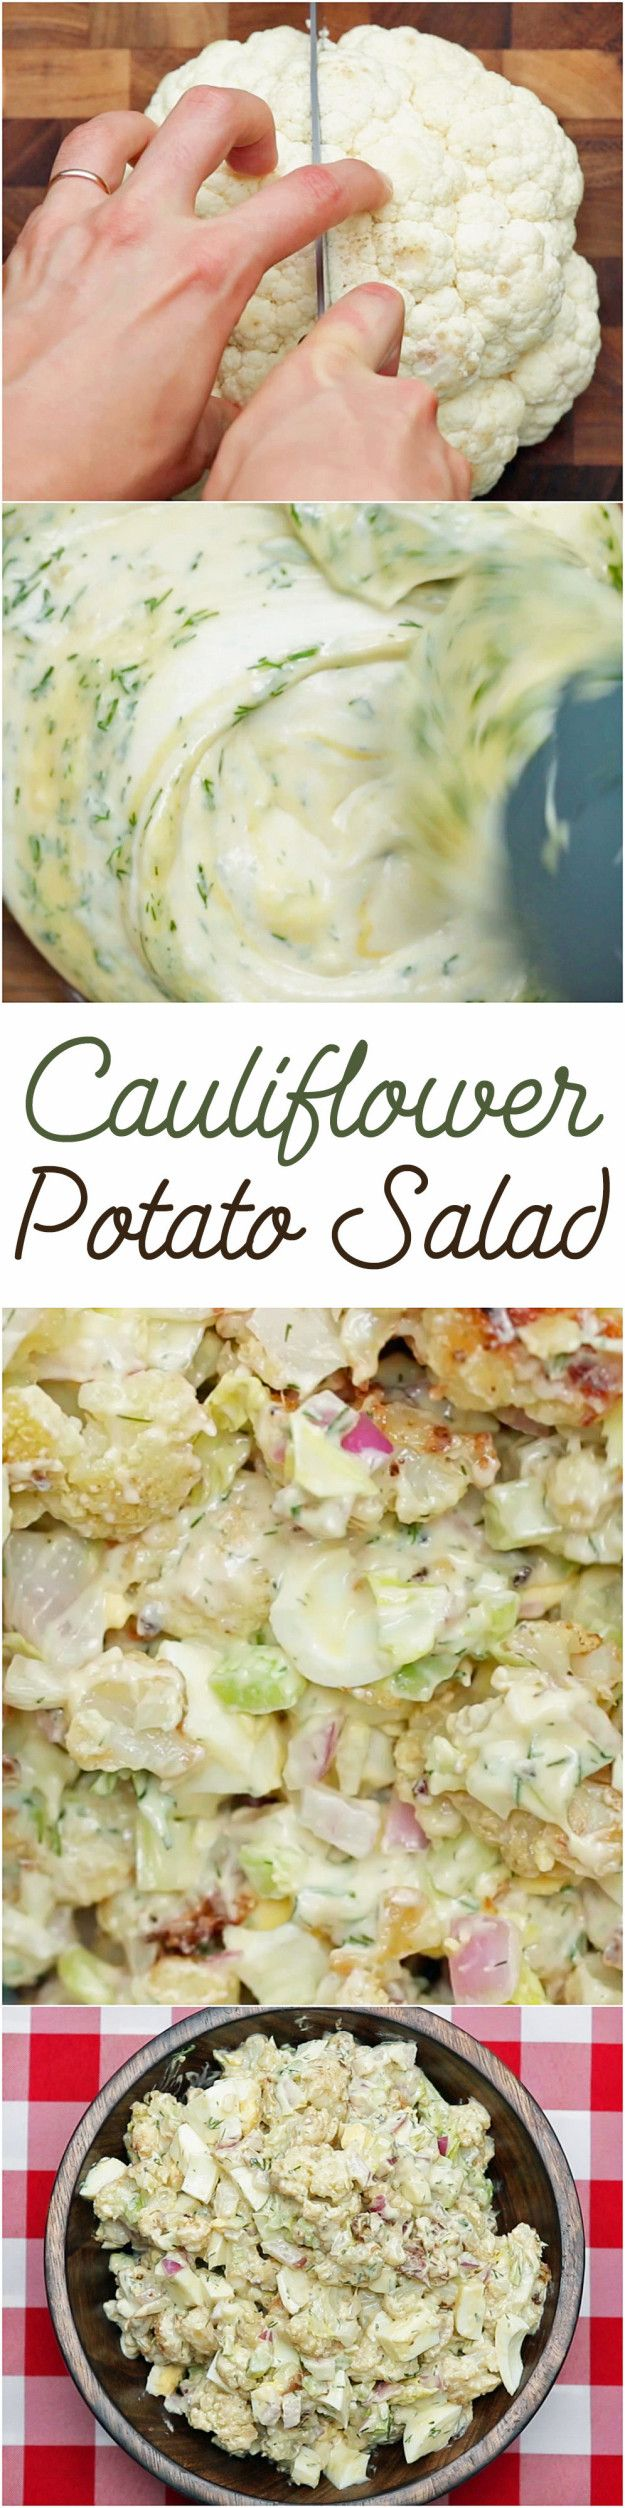 Cauliflower Potato Salad